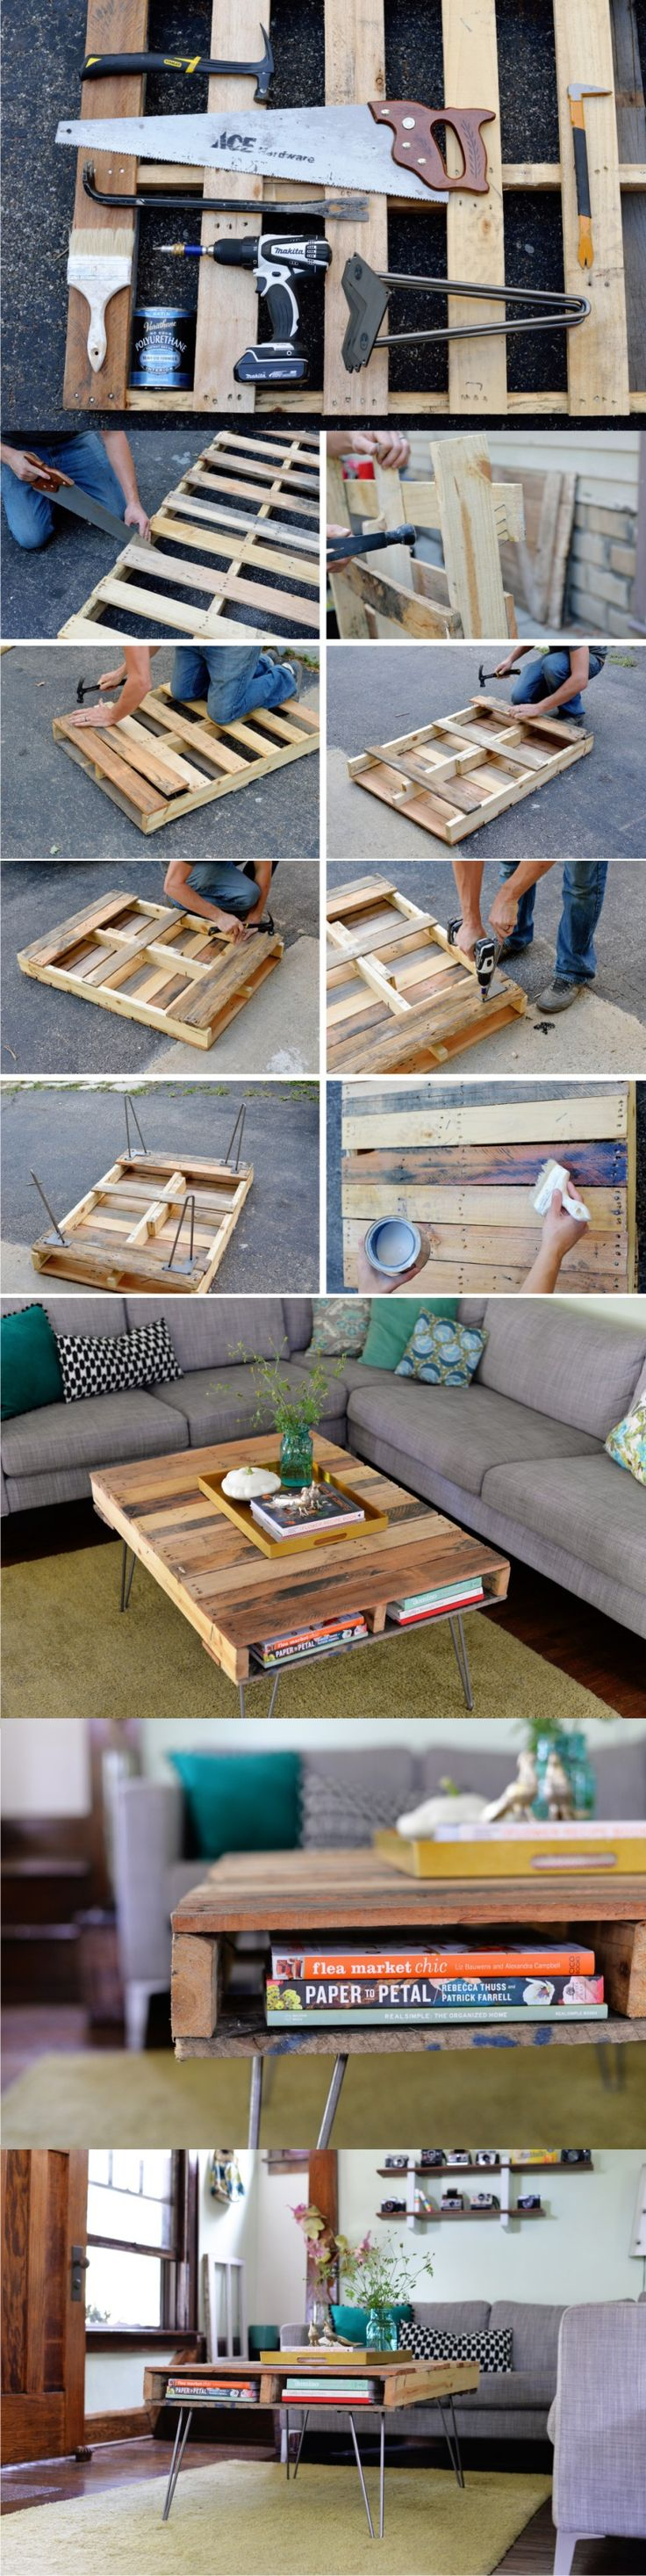 290 best ME diy images on Pinterest